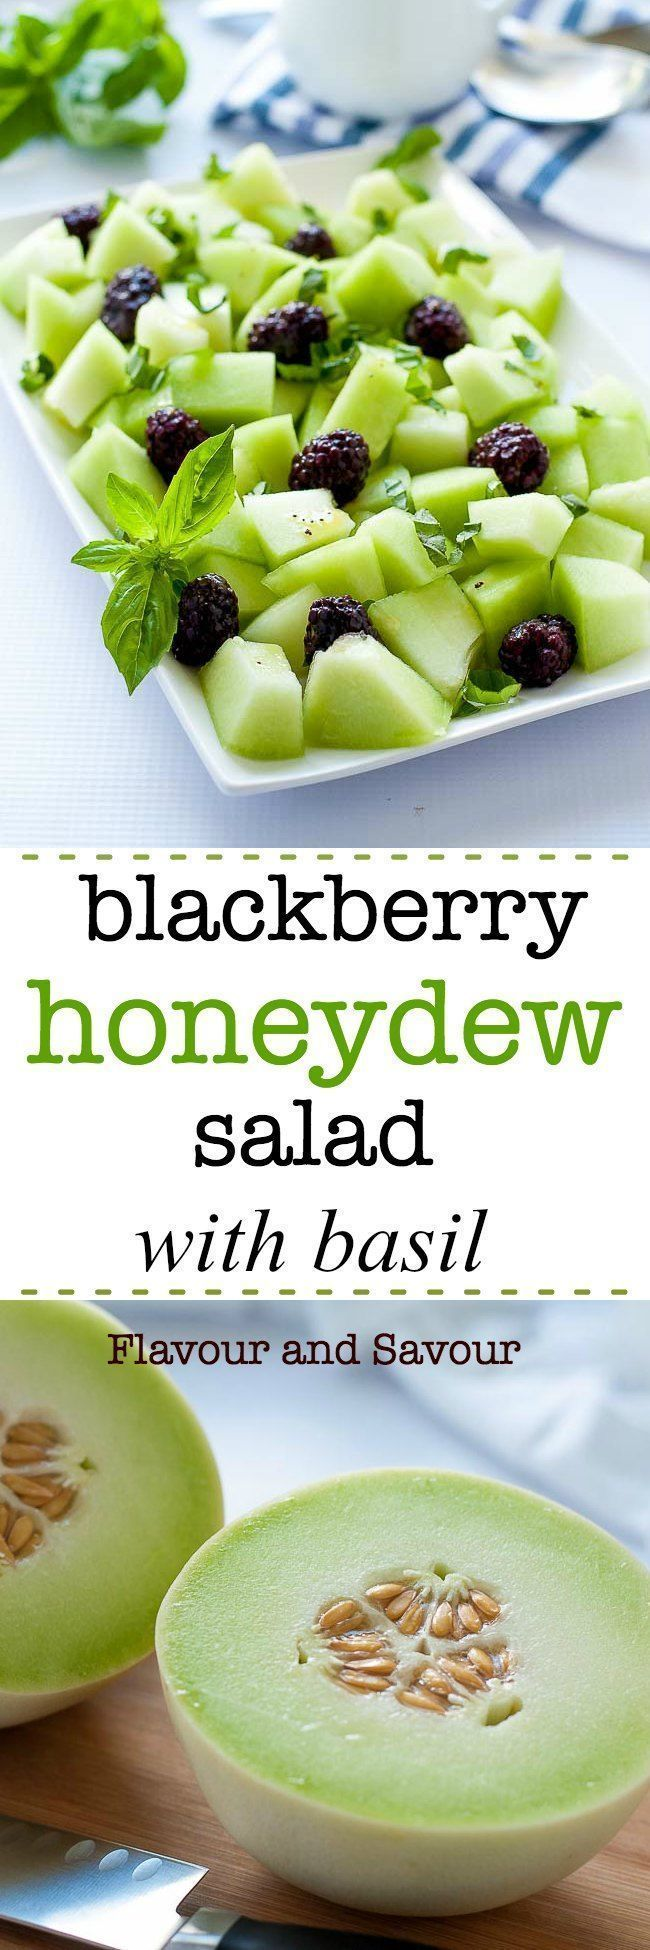 Sweet honeydew, tart blackberries and pungent basil combine to make this fresh Blackberry Honeydew Salad with Basil as appetizing to look at as it is to eat. How to choose a ripe honeydew melon every time! #HowtoEatHealthy